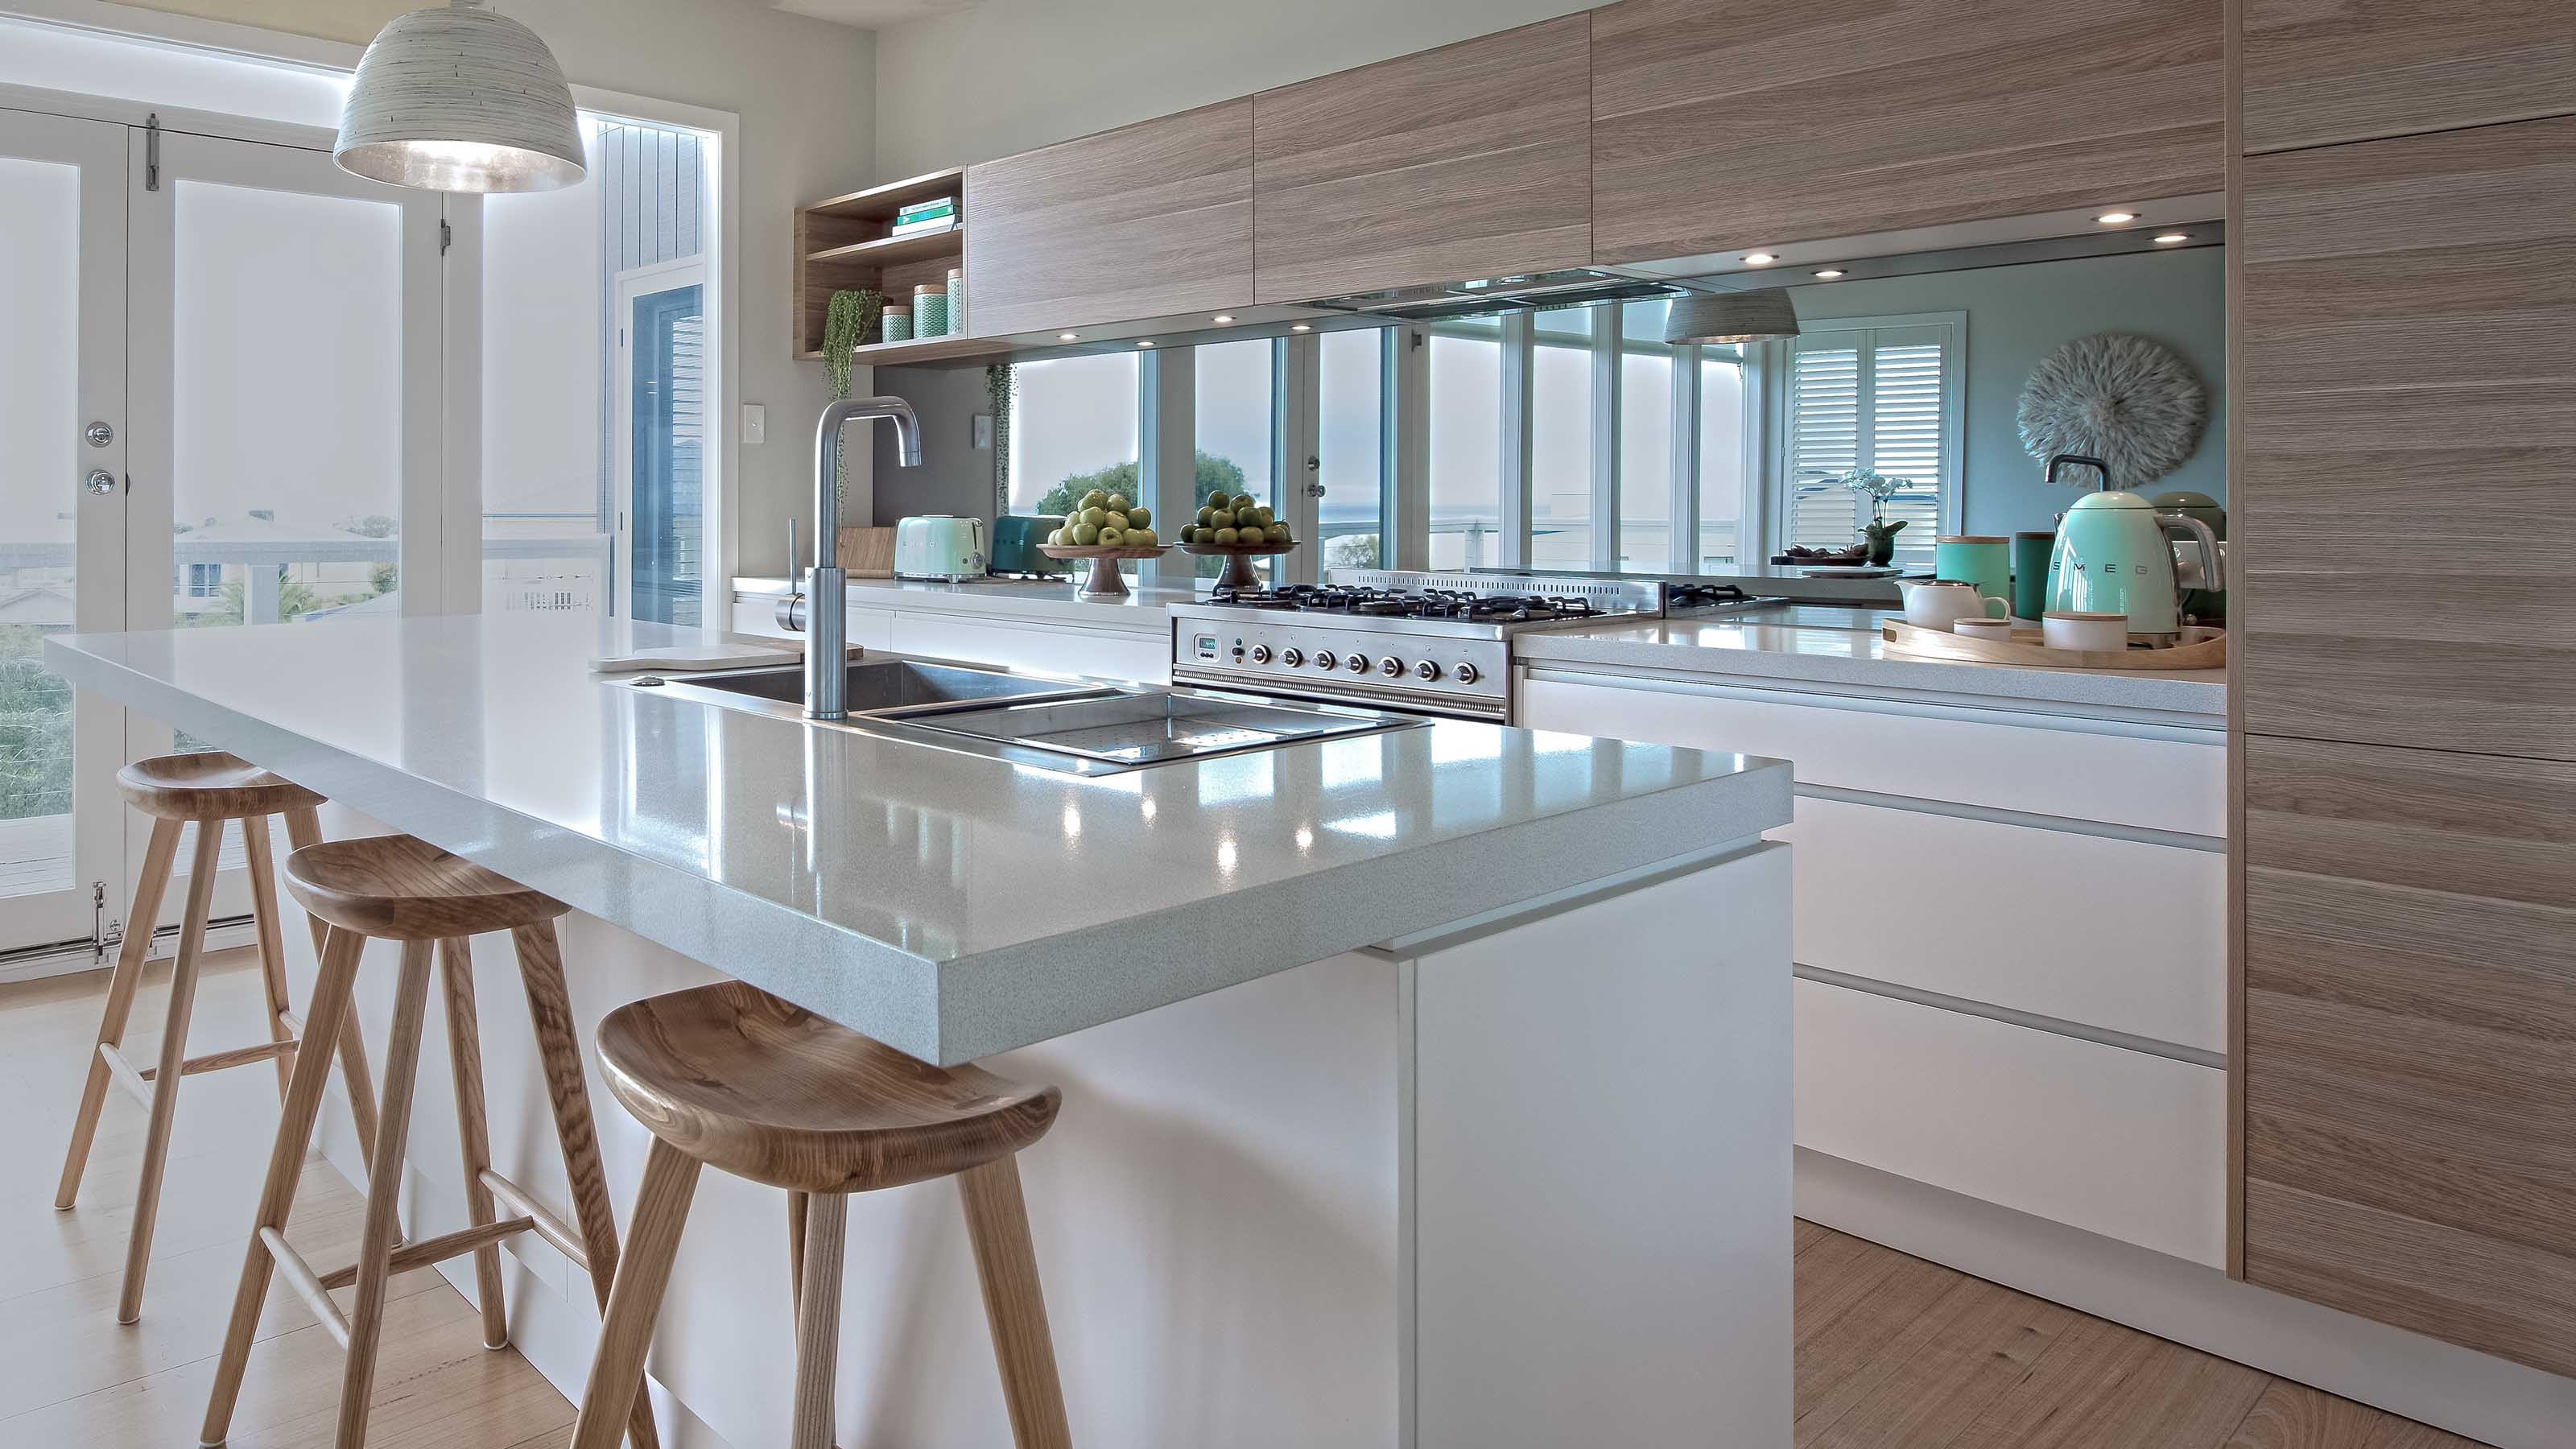 mirraGLO FUSHION™ - Mirror Kitchen Glass Splashback - Torquay - Supplied & Installed by - geelongsplashbacks.com.au